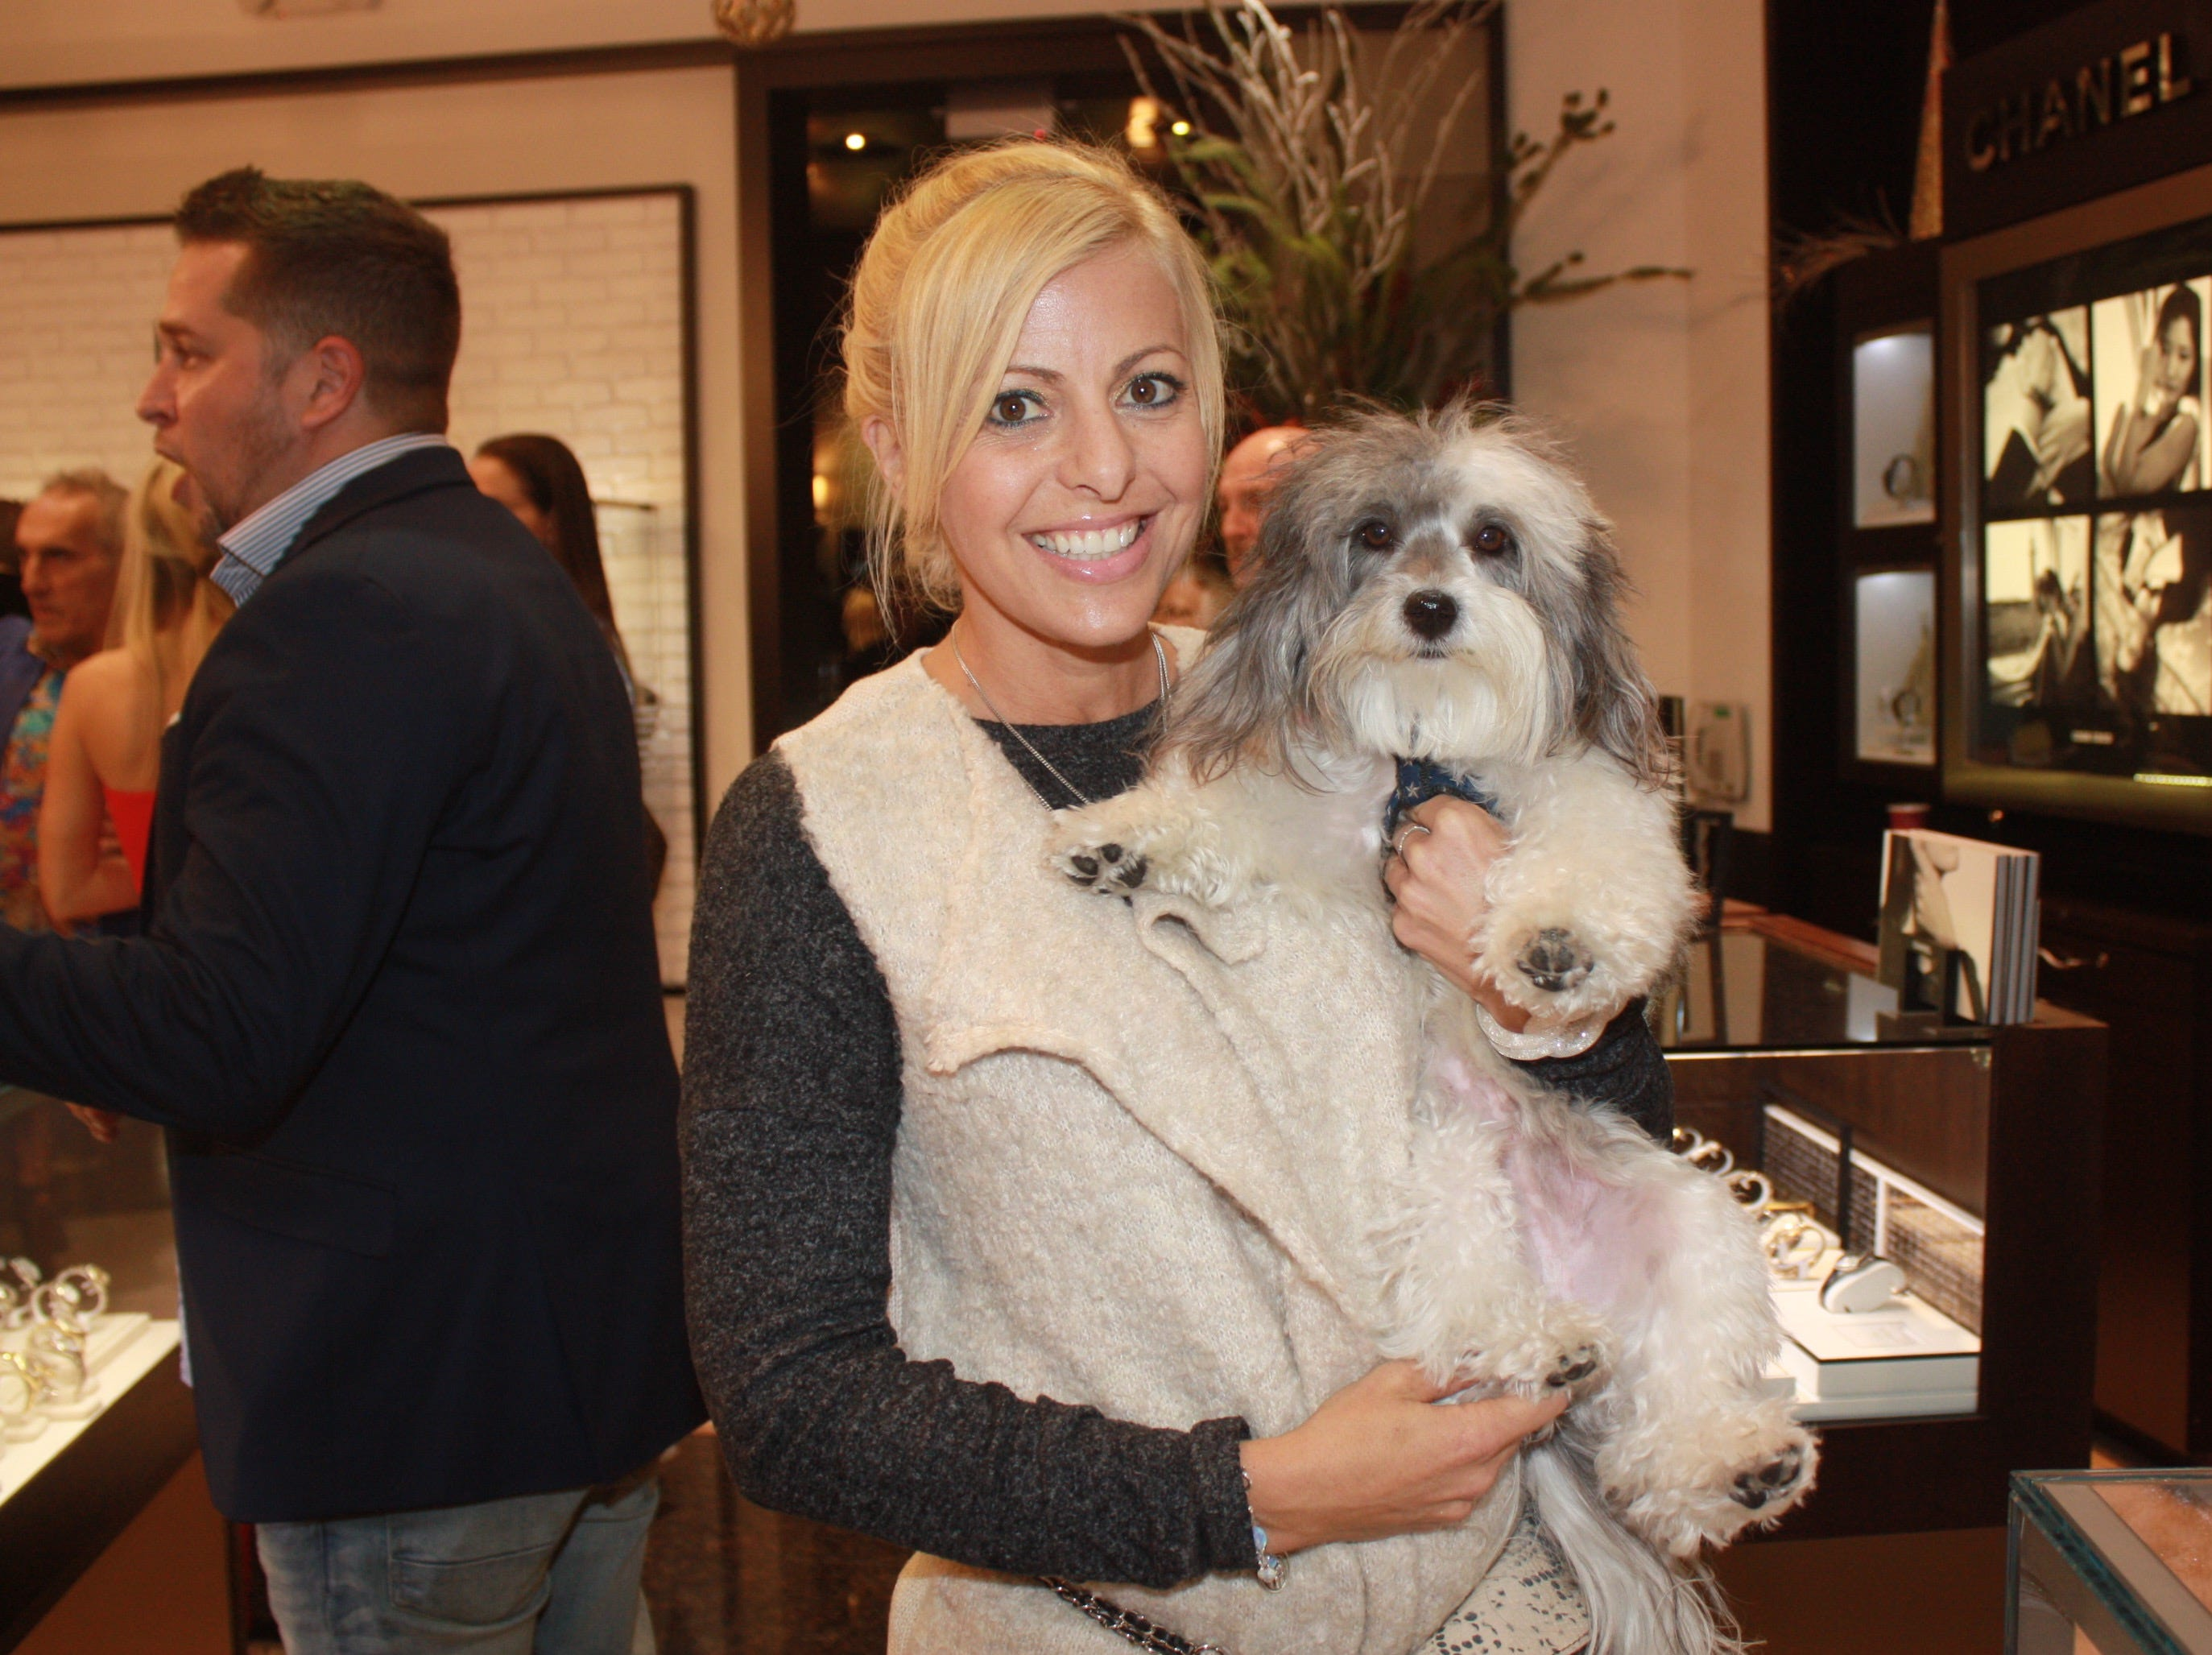 Nicole Haboush with her dog Maximillian at the Provident Jewelry party for the Equine Rescue and Adoption Foundation.